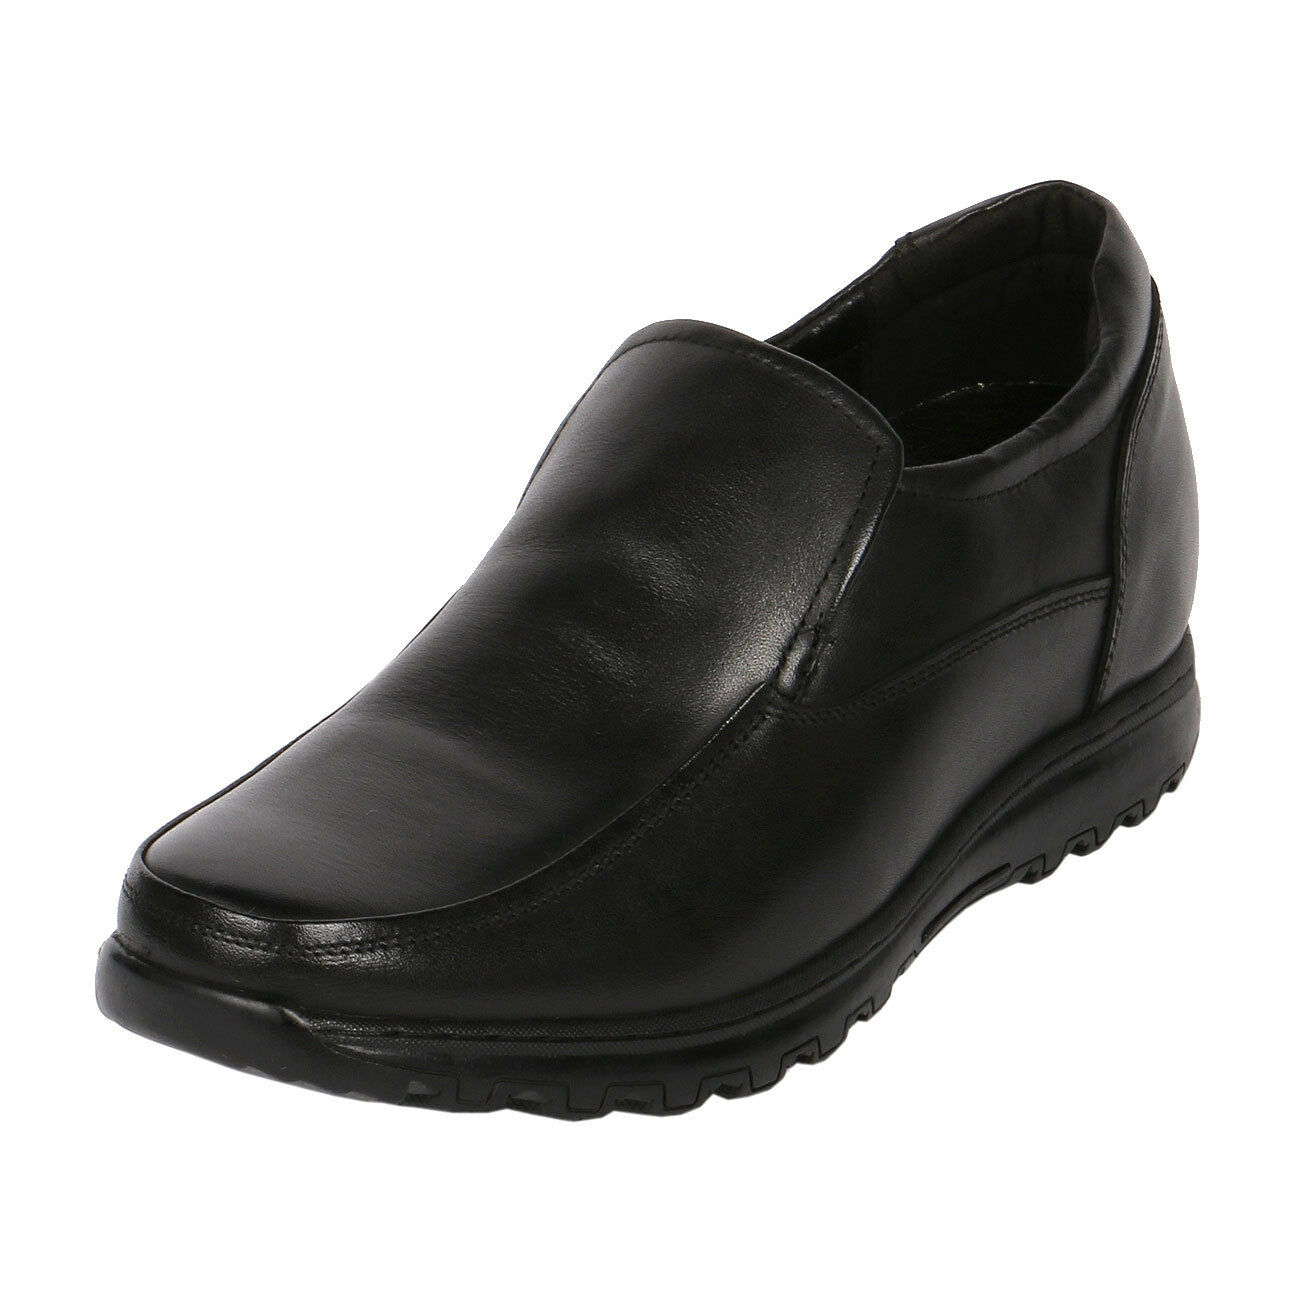 Men's Elevation Tall Shoes 3